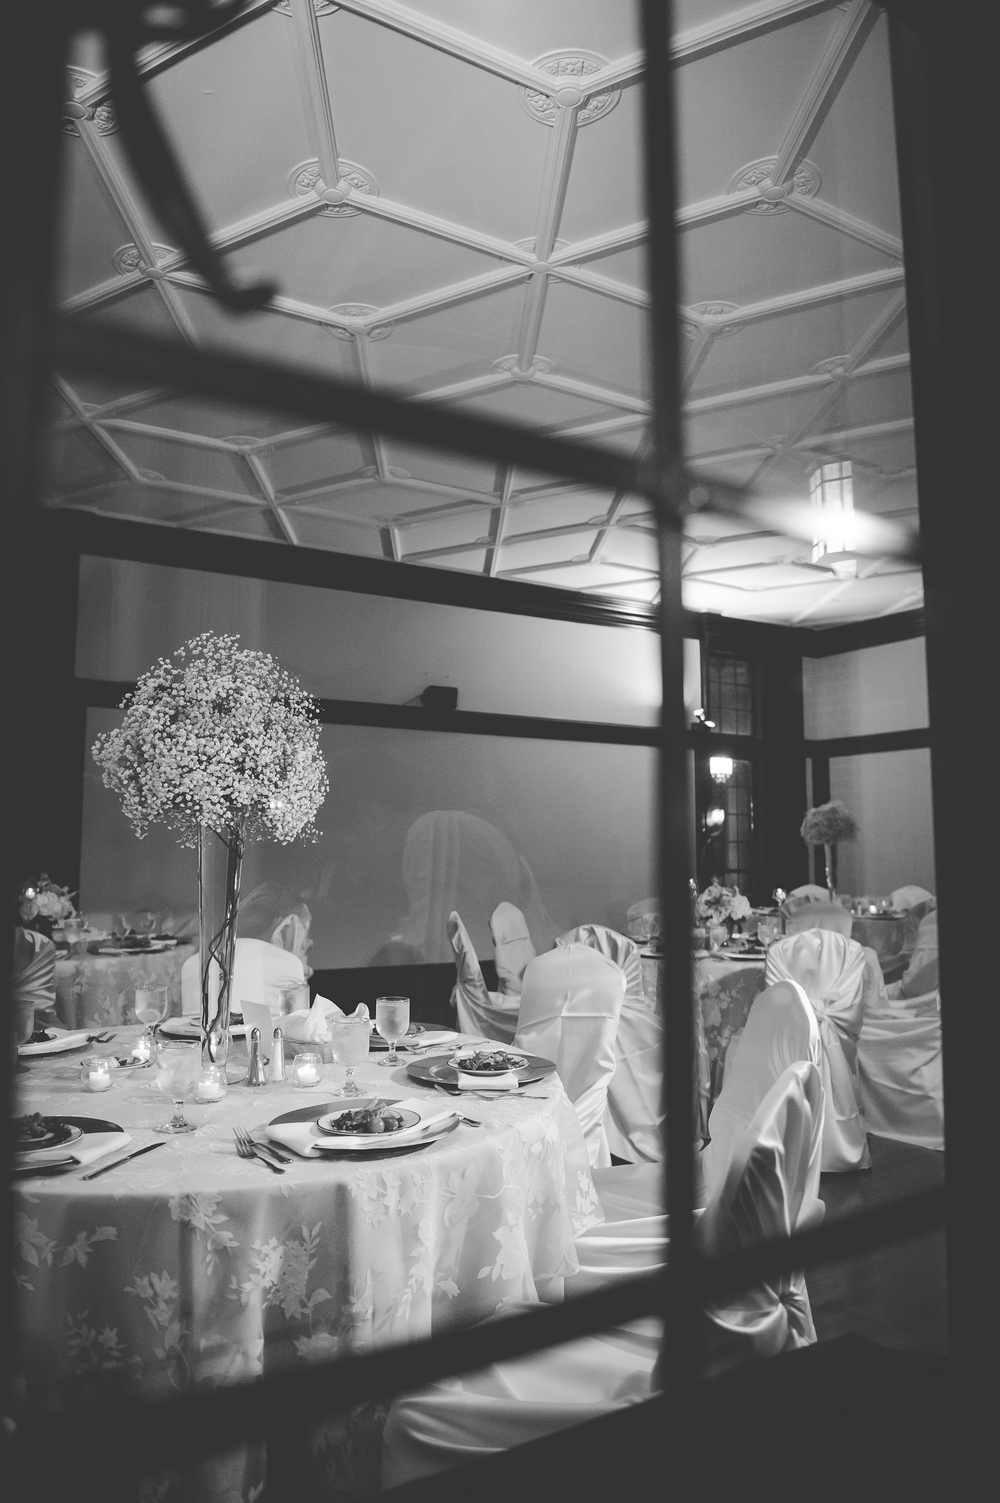 waveny_house_wedding_New_canaan_CT_Amy_Champagne_Events988.jpg